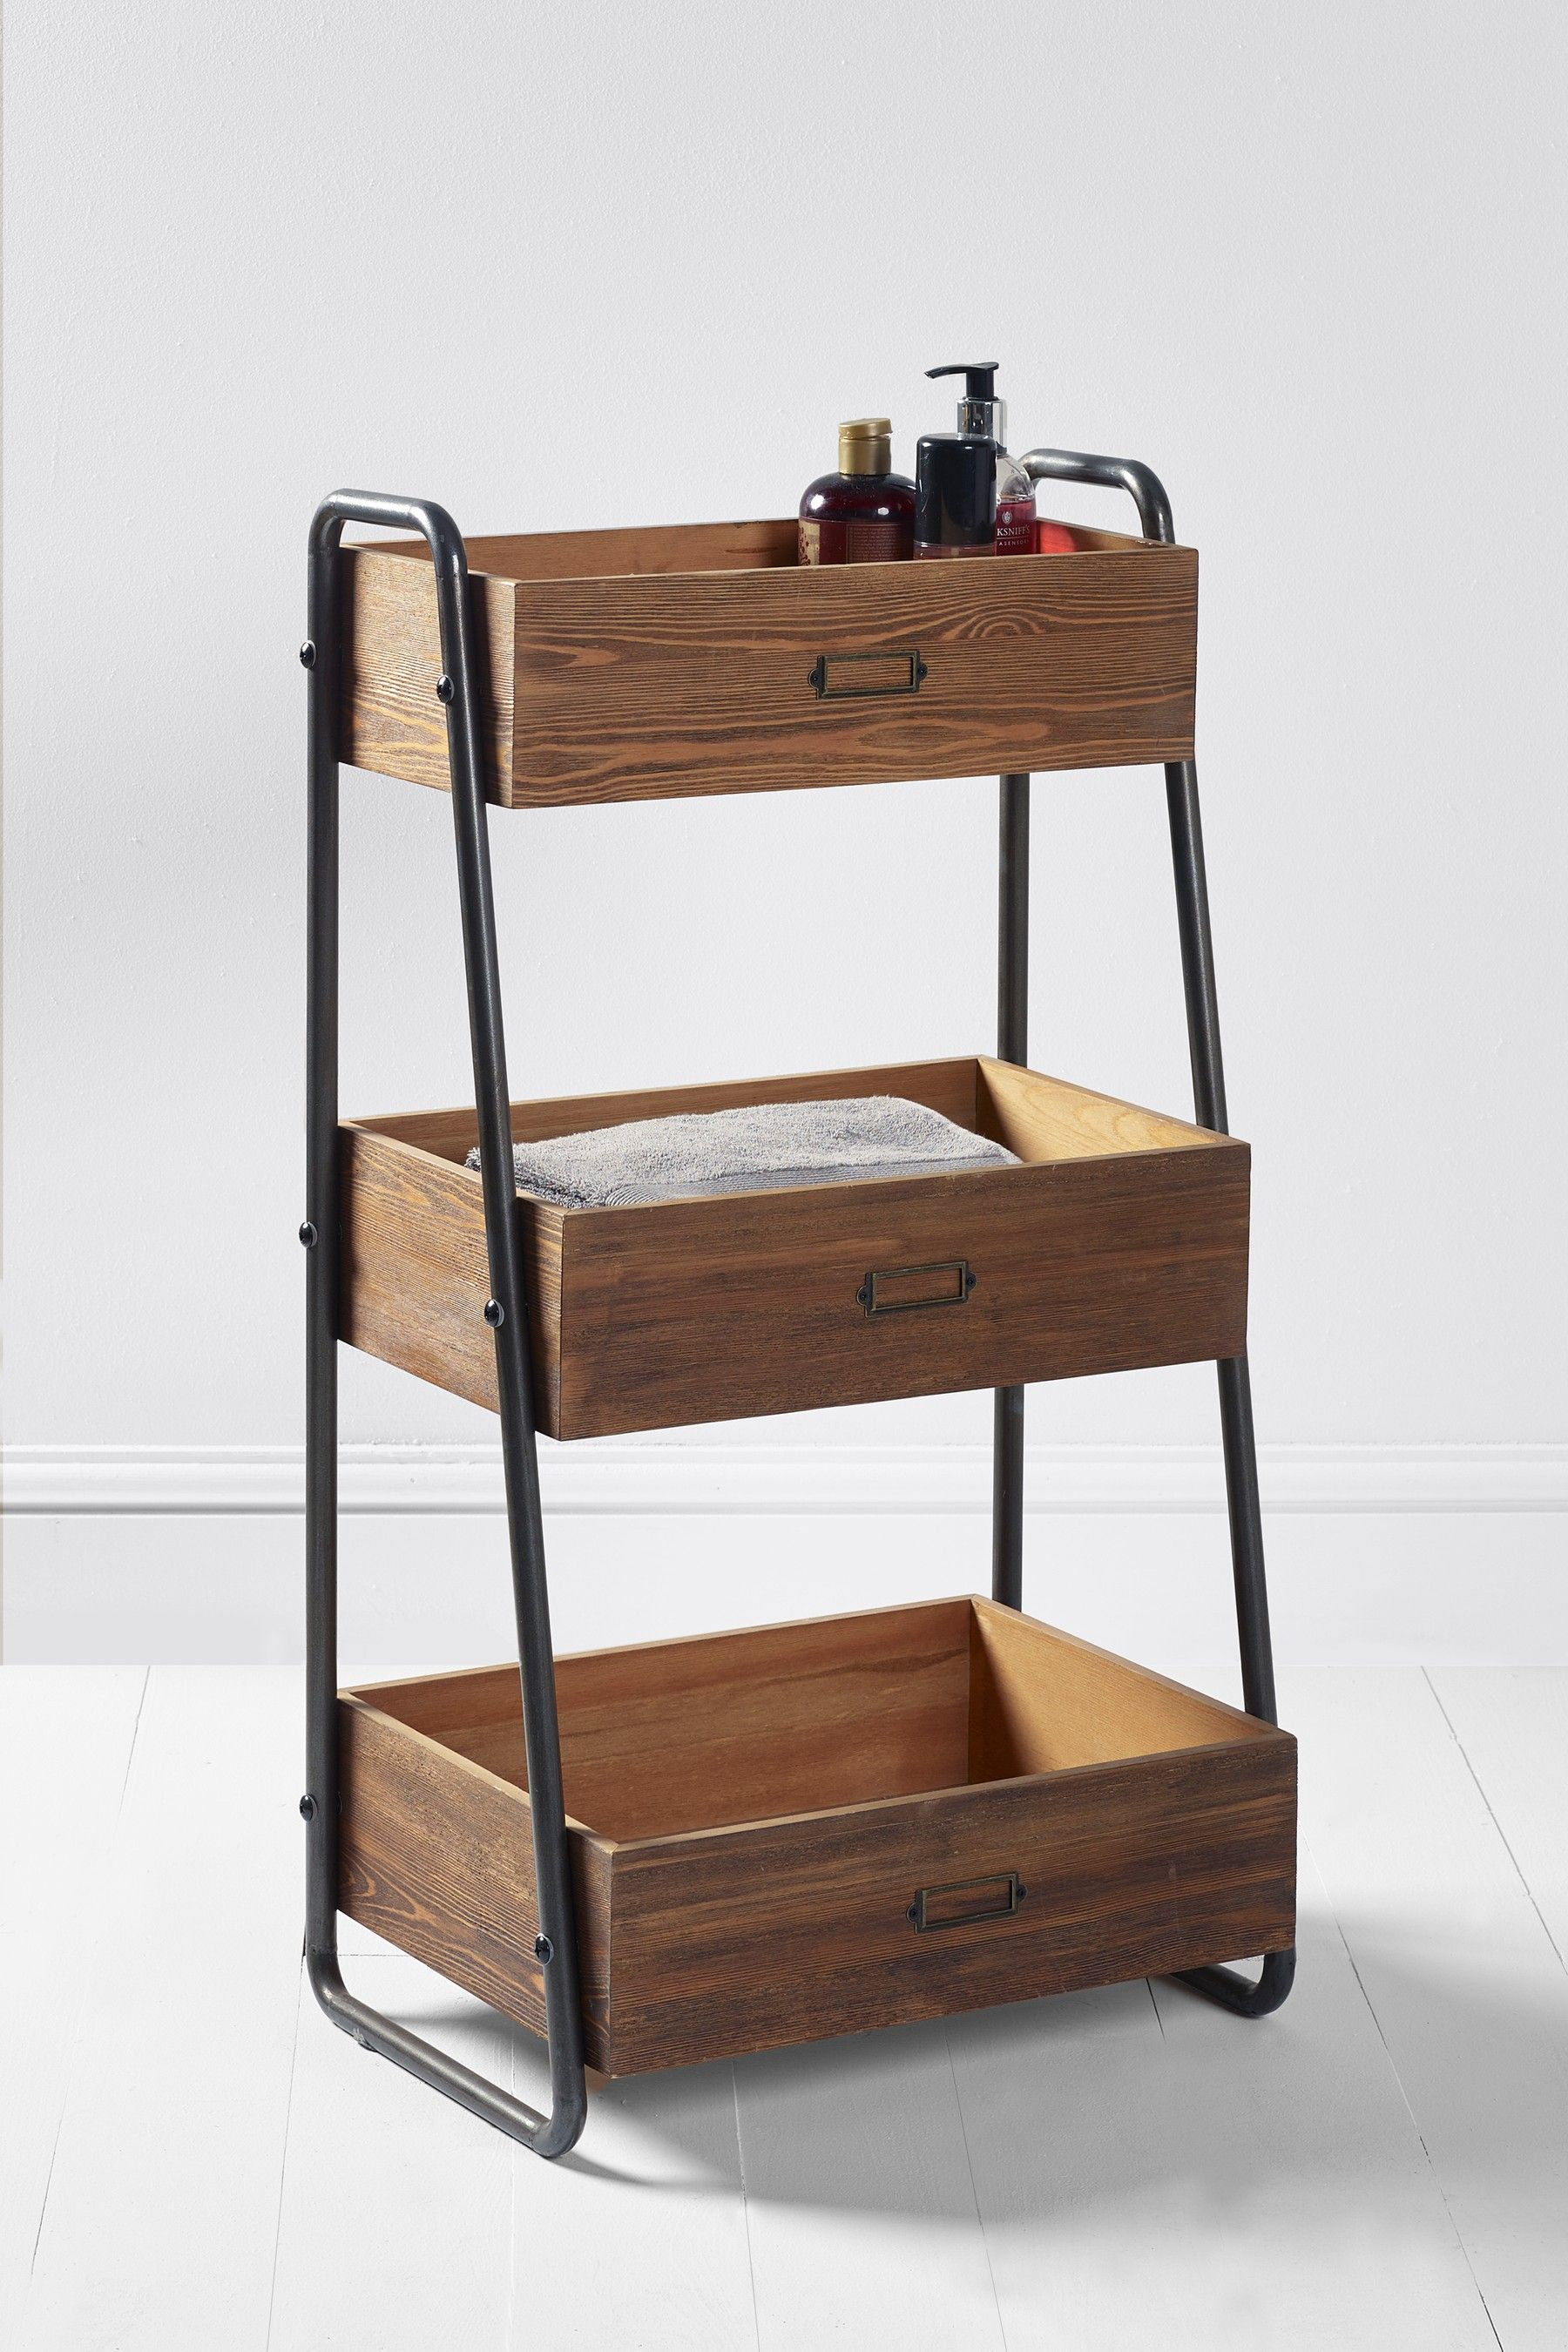 Next Hudson Tiered Caddy Natural Wooden Bathroom Storage Wooden Accessories Silver Home Accessories